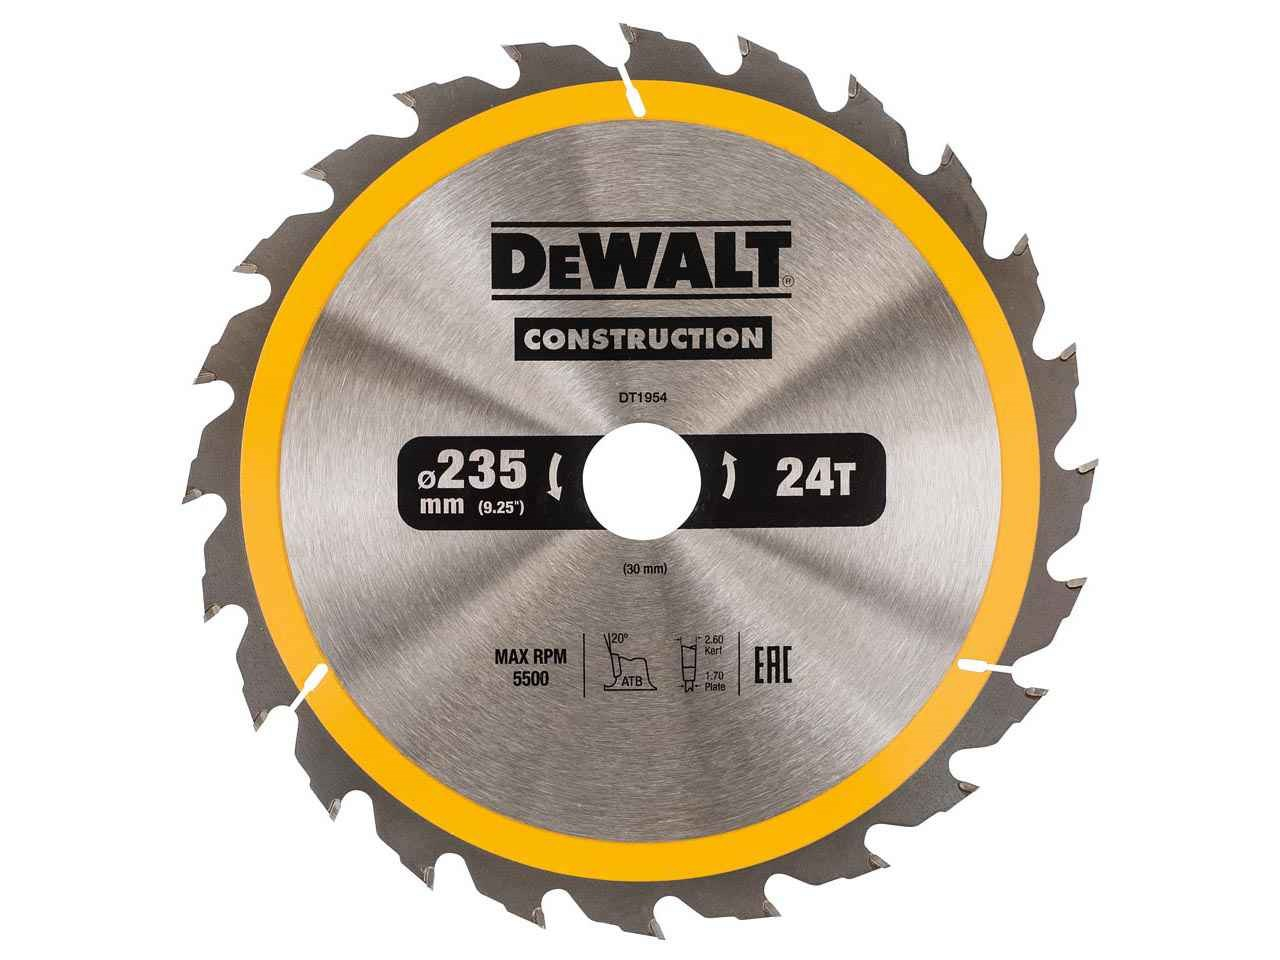 Dewalt dt1954qz construction circular saw blade 235x30mm 24t keyboard keysfo Images